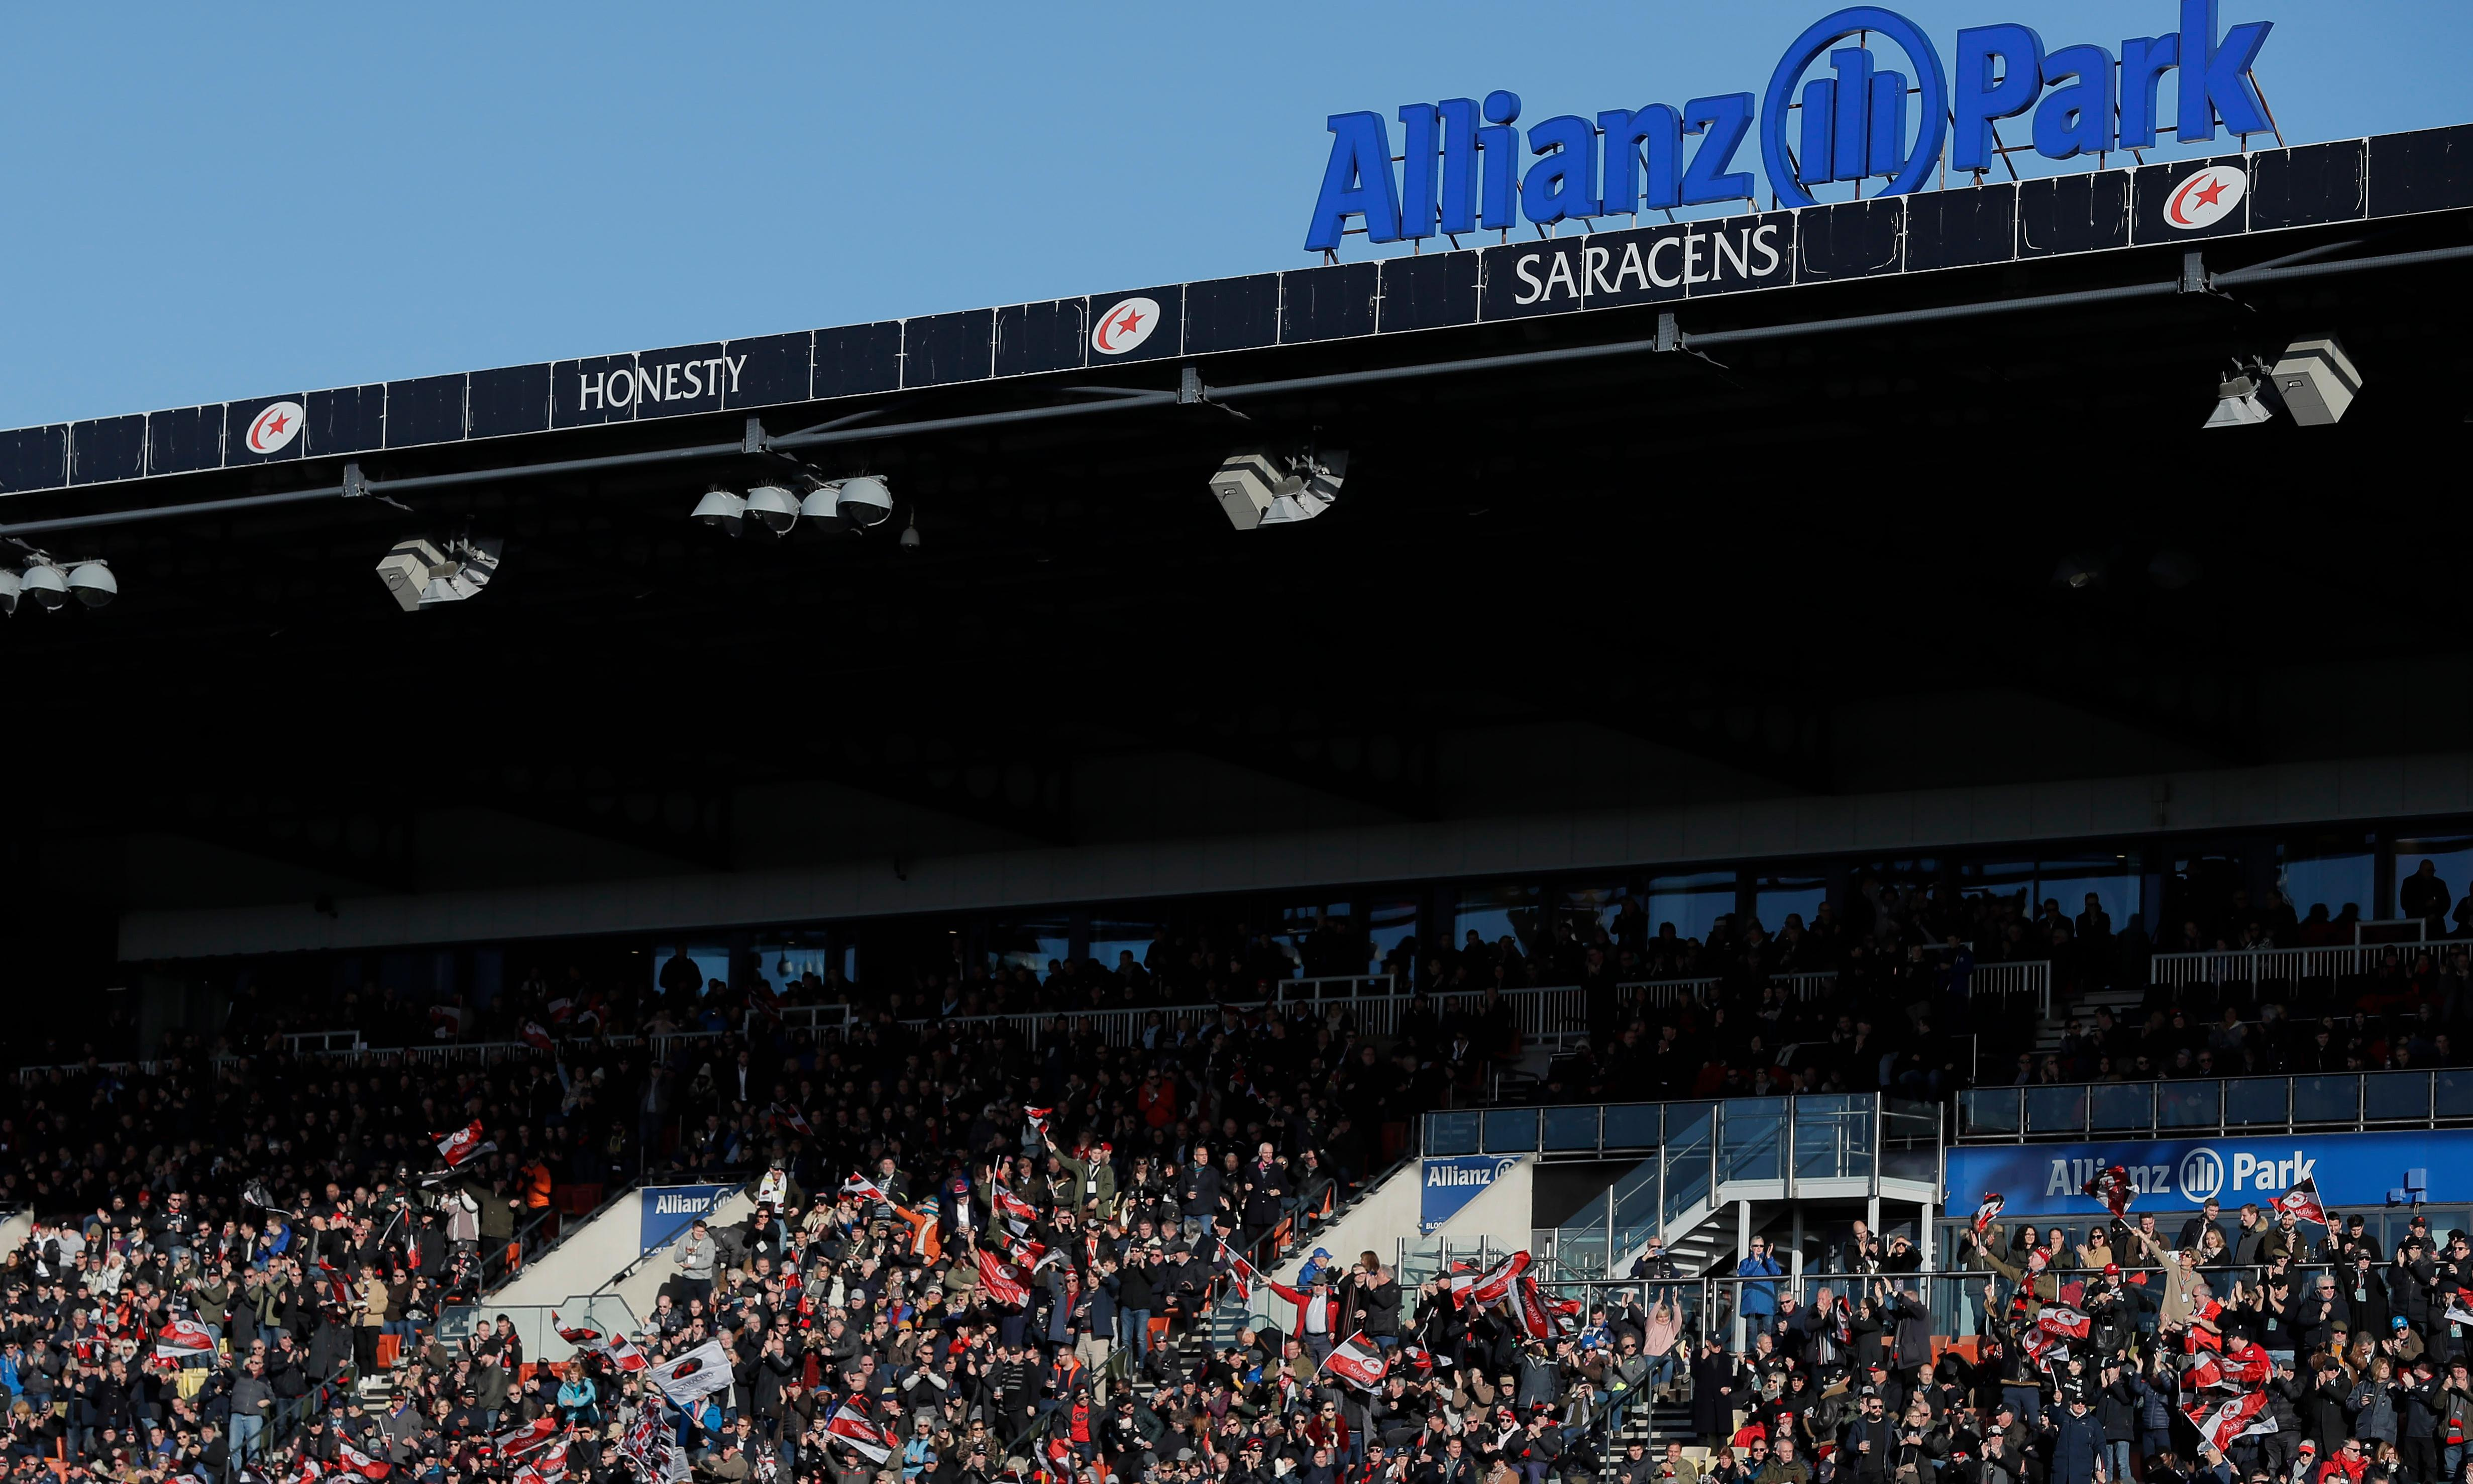 The sorry tale of Saracens still leaves questions to be answered